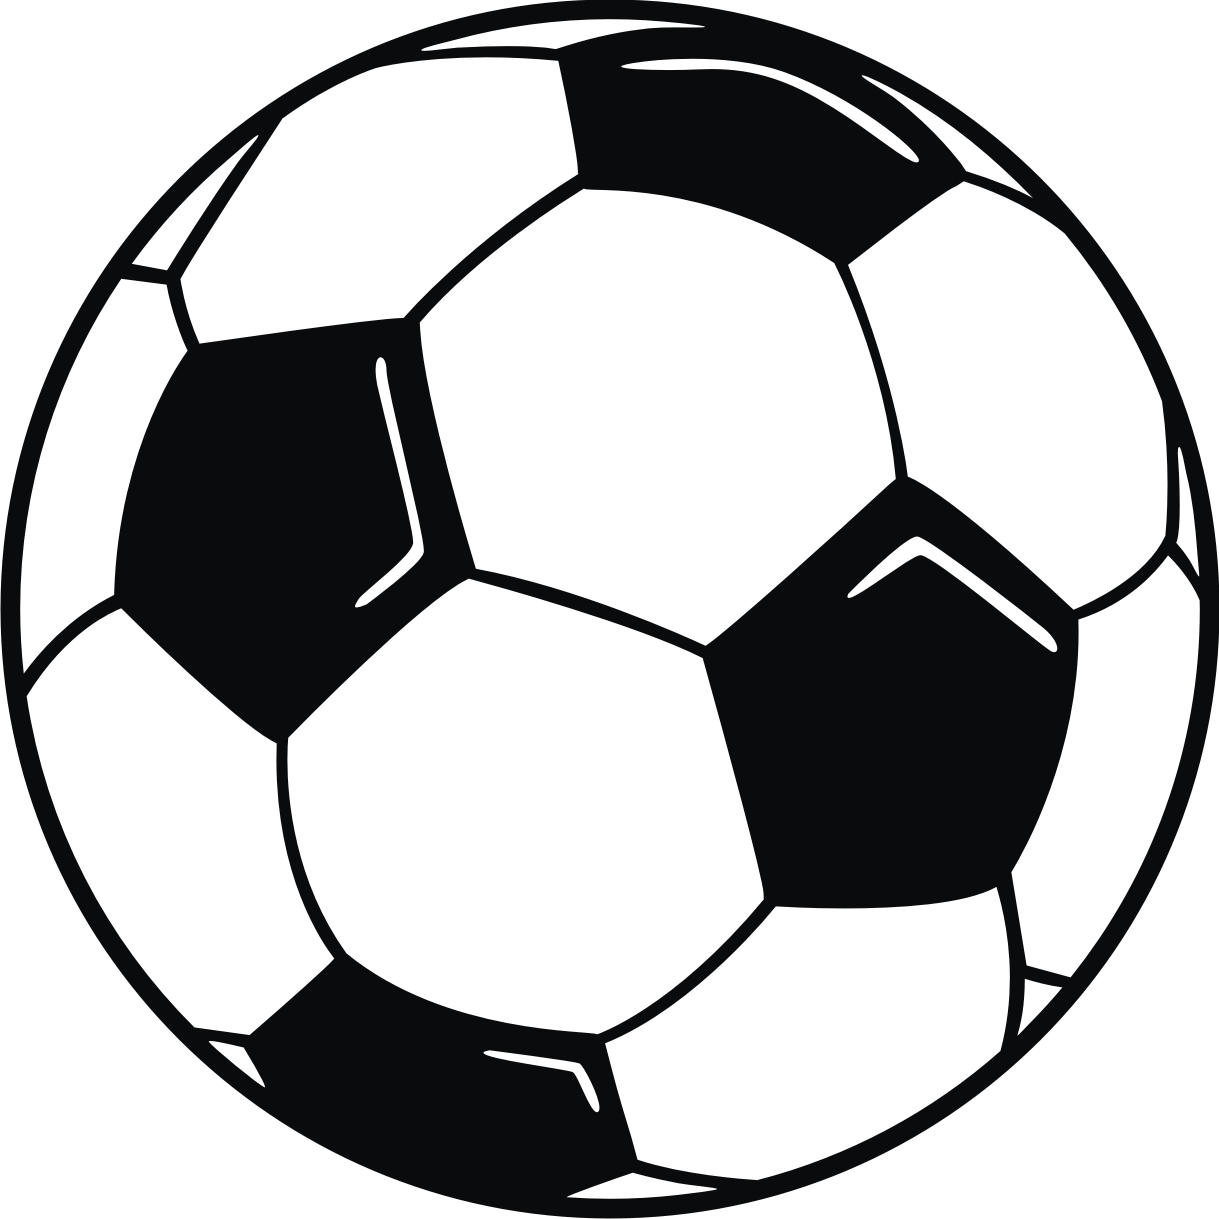 clip art soccer ball with hi lights graphic design pinterest rh pinterest com clipart images of sports balls clip art black and white sports balls